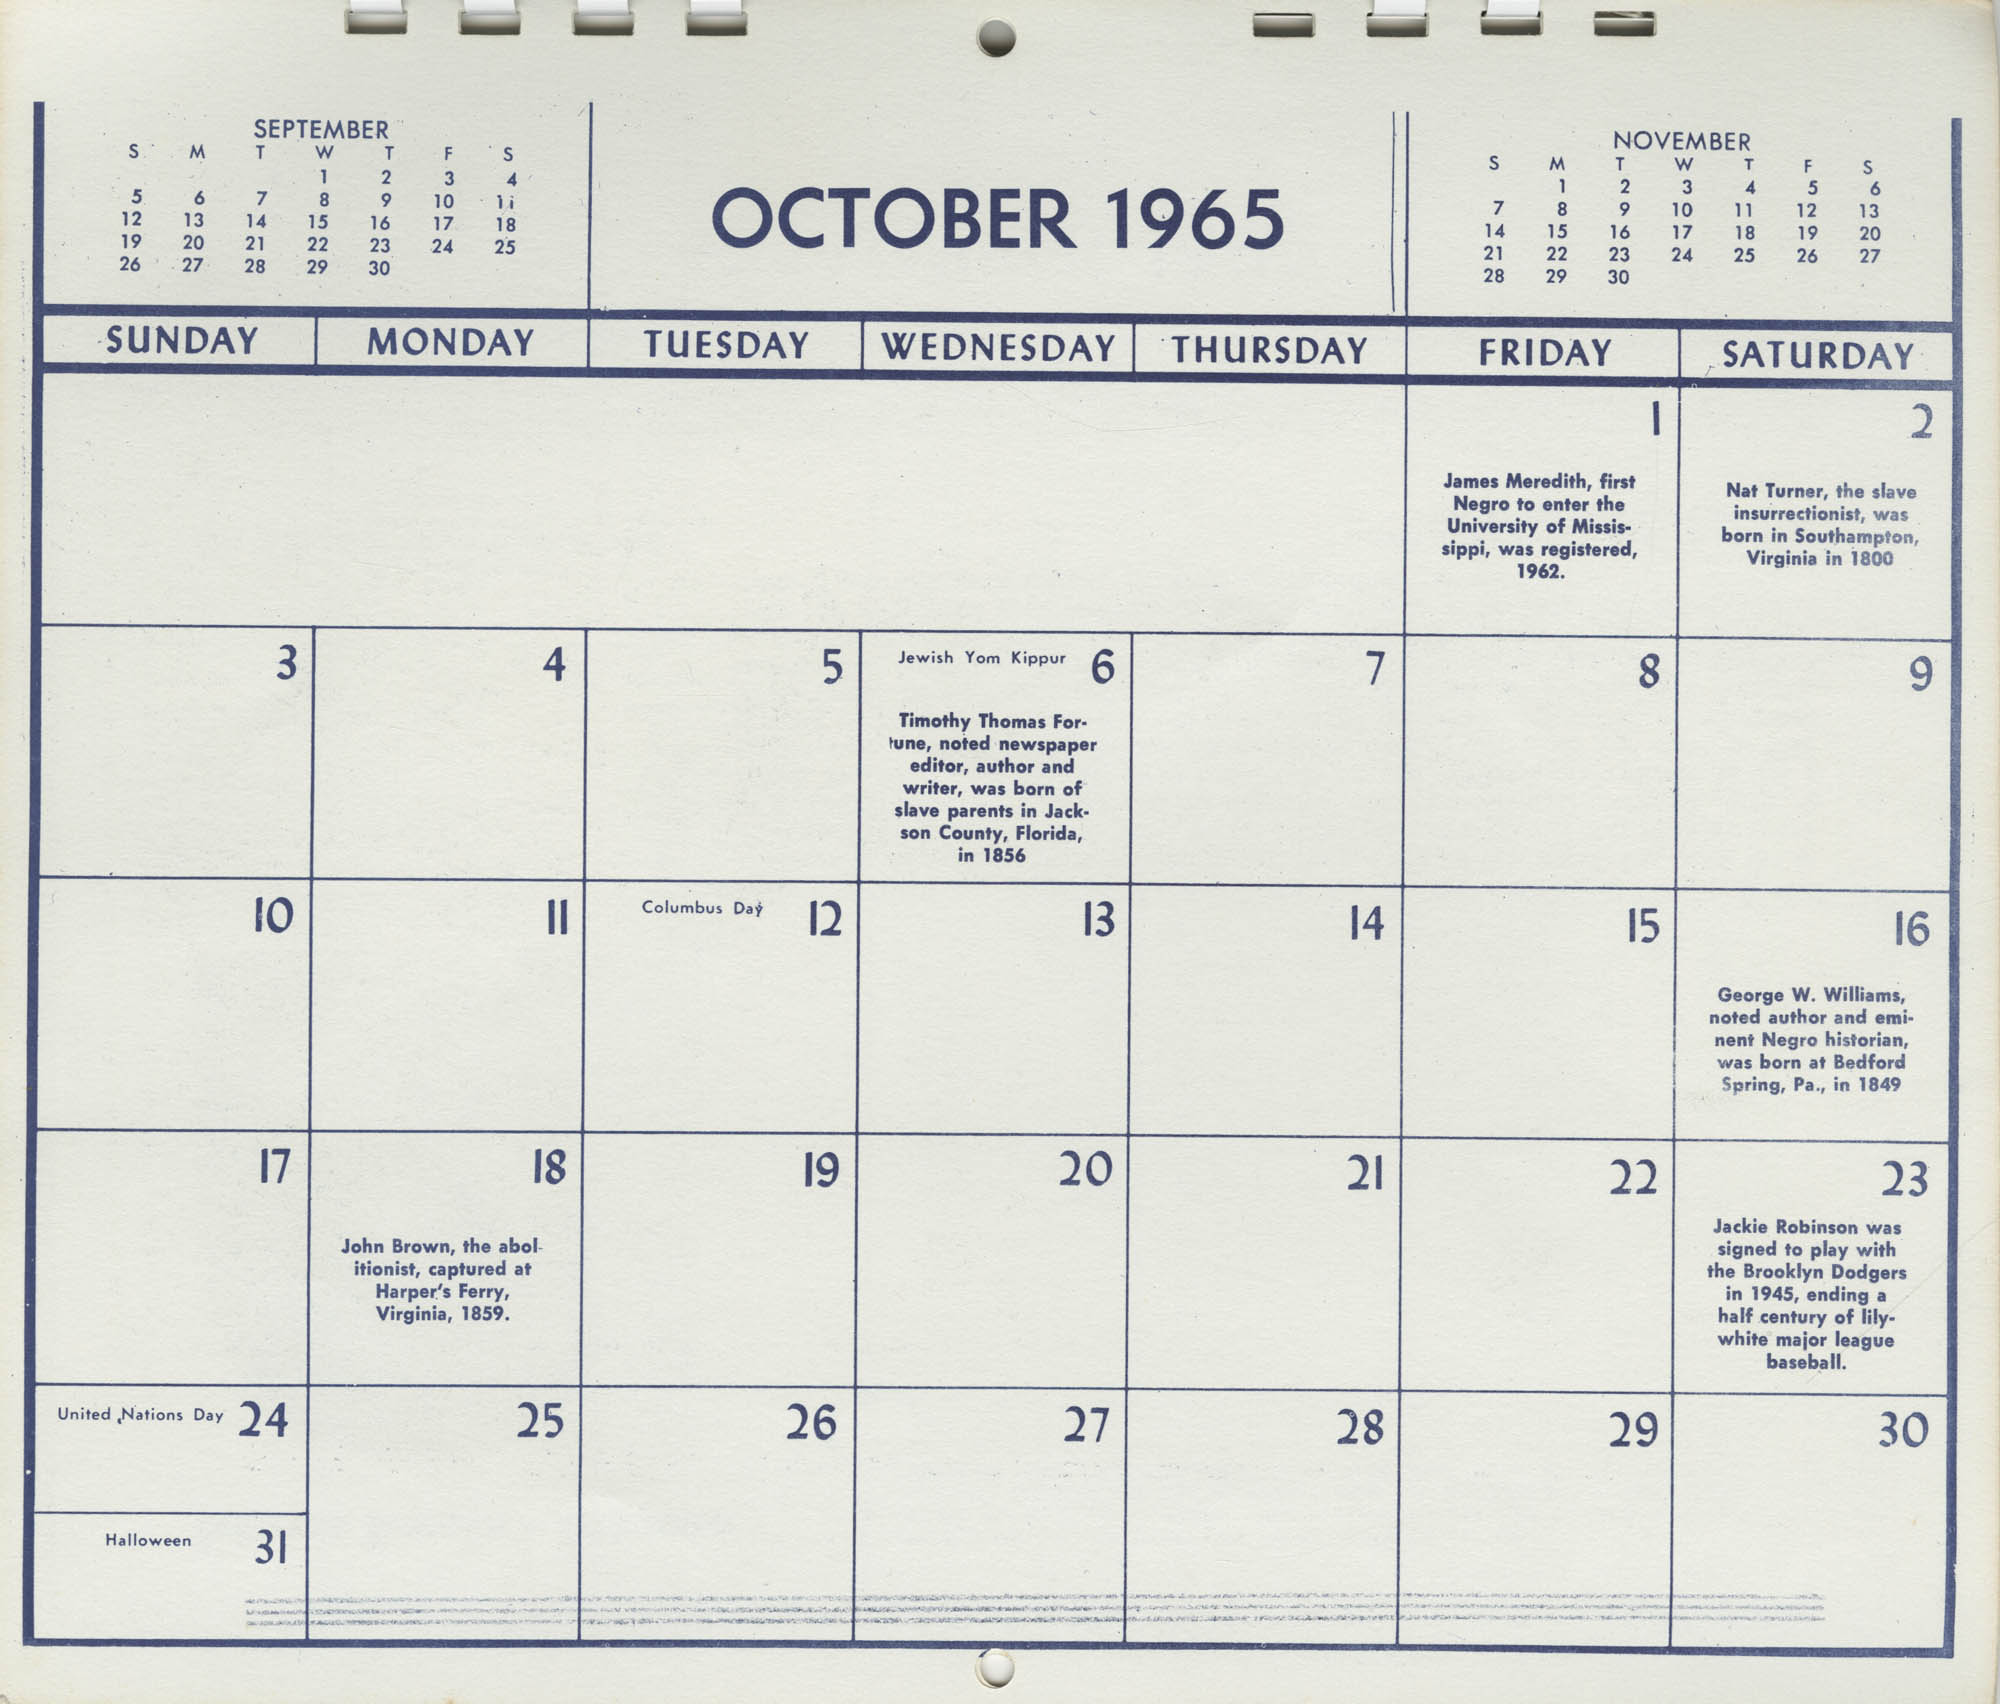 Southern Christian Leadership Conference Newsletter Calendar, October 1965, Bottom